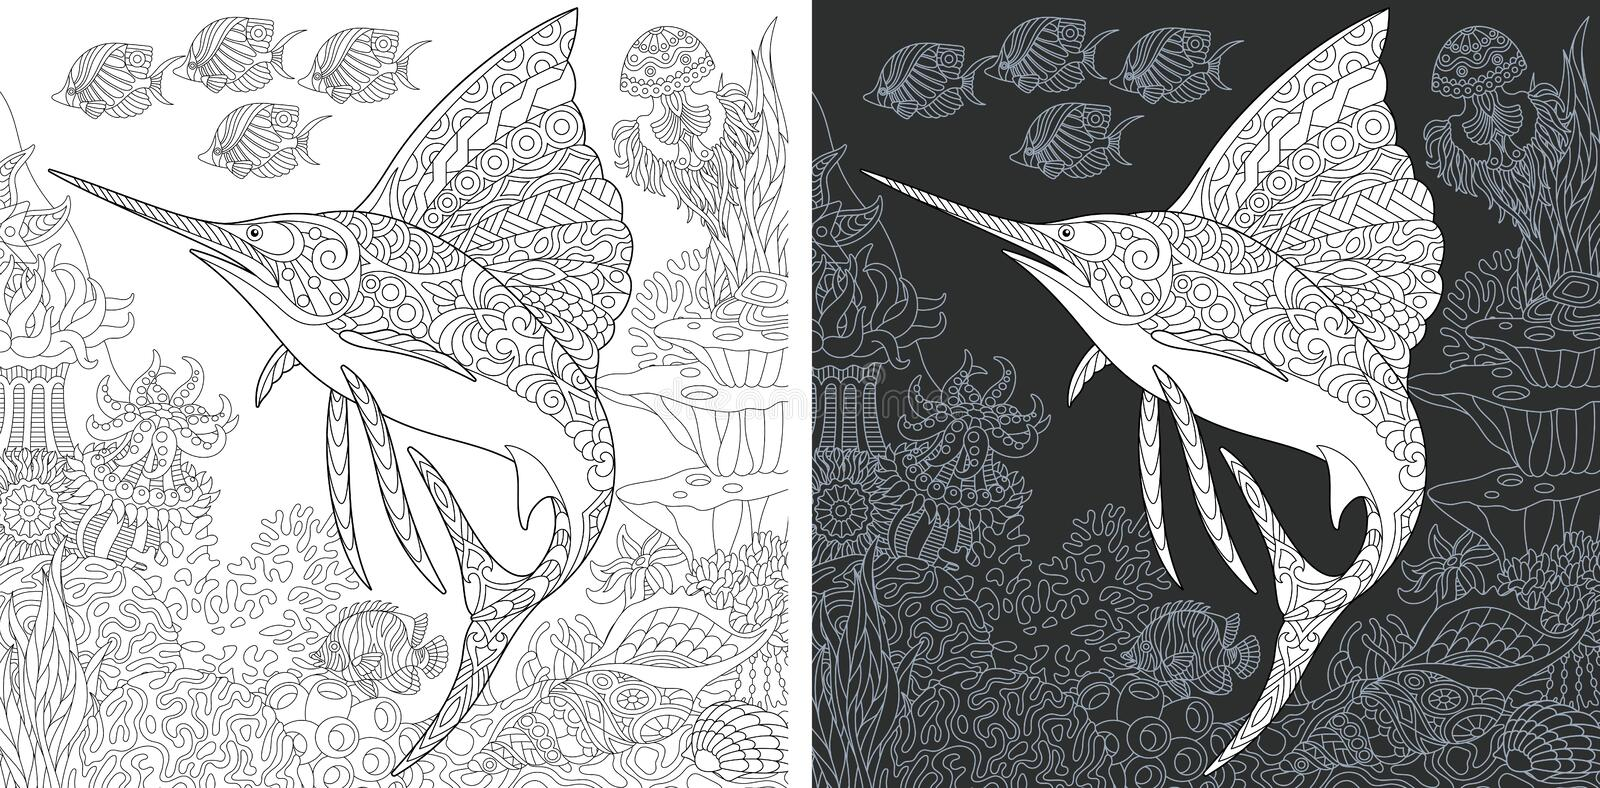 Coloring pages with Sailfish royalty free stock photography